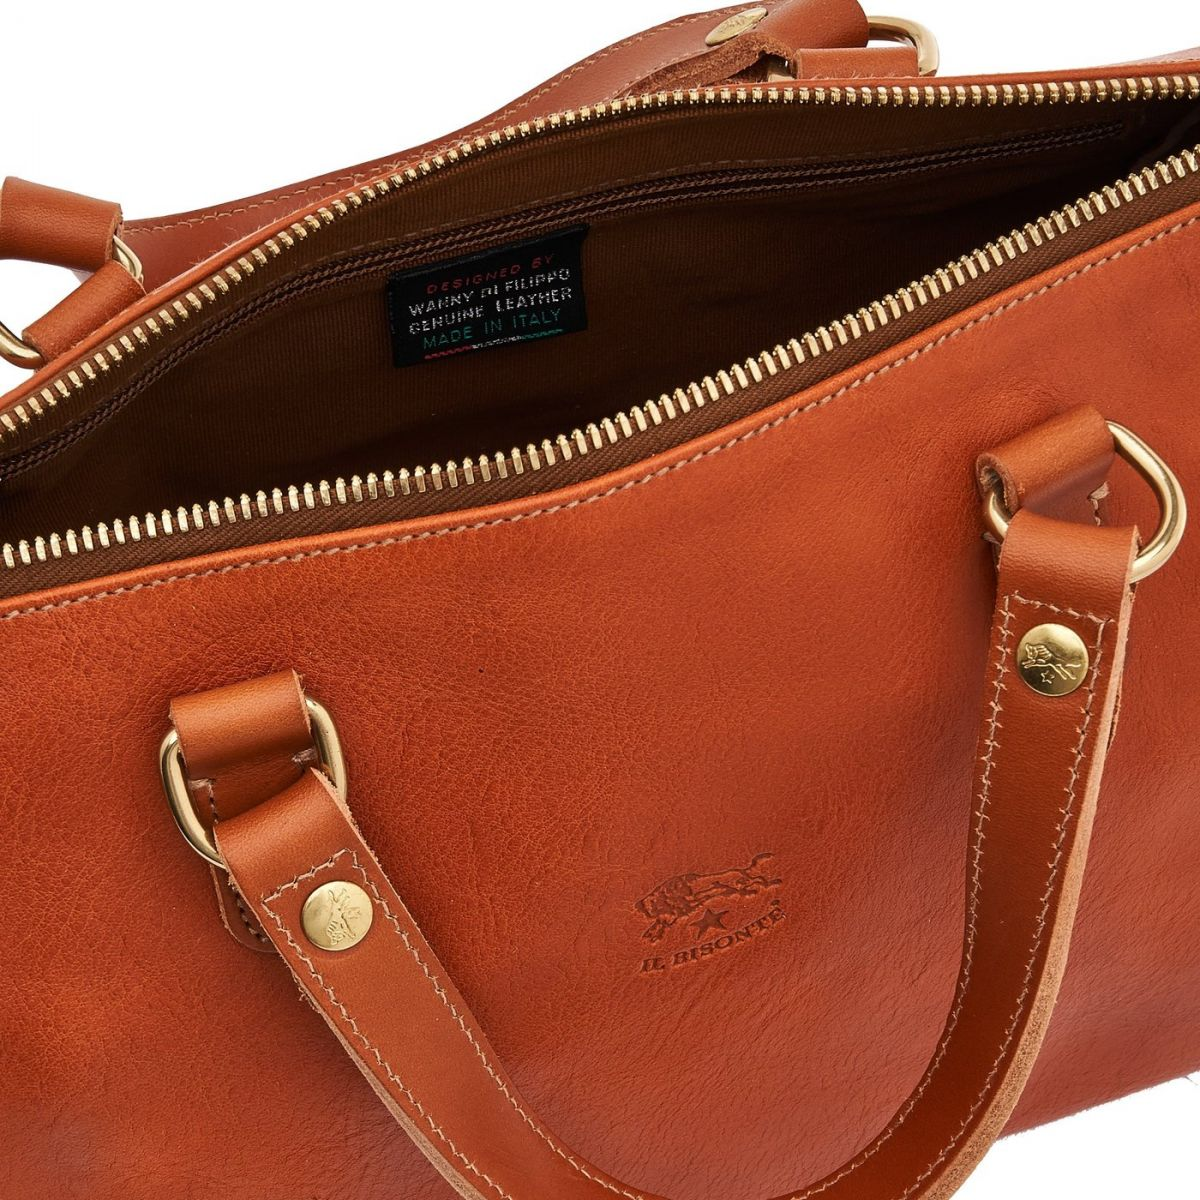 Women's Handbag in Cowhide Double Leather BTH019 color Caramel | Details